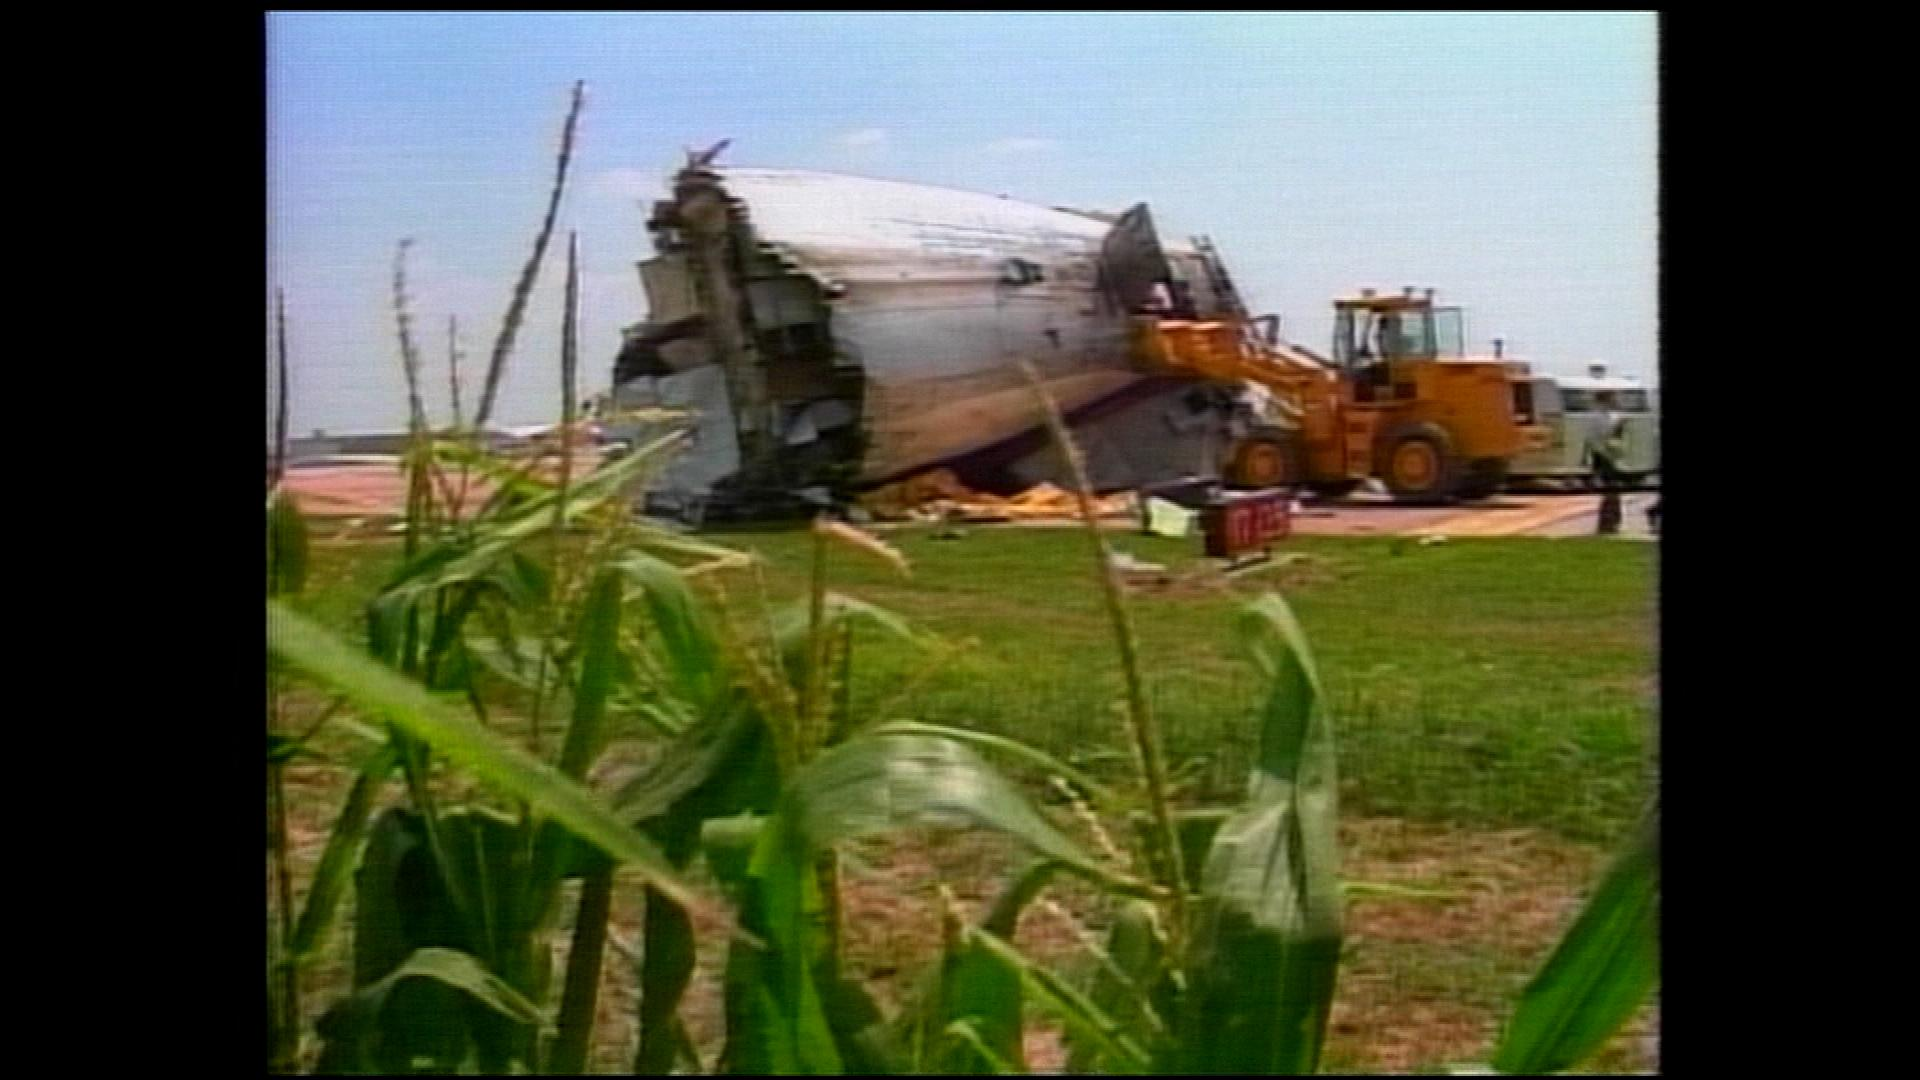 Wreckage in the cornfield (credit: CBS)